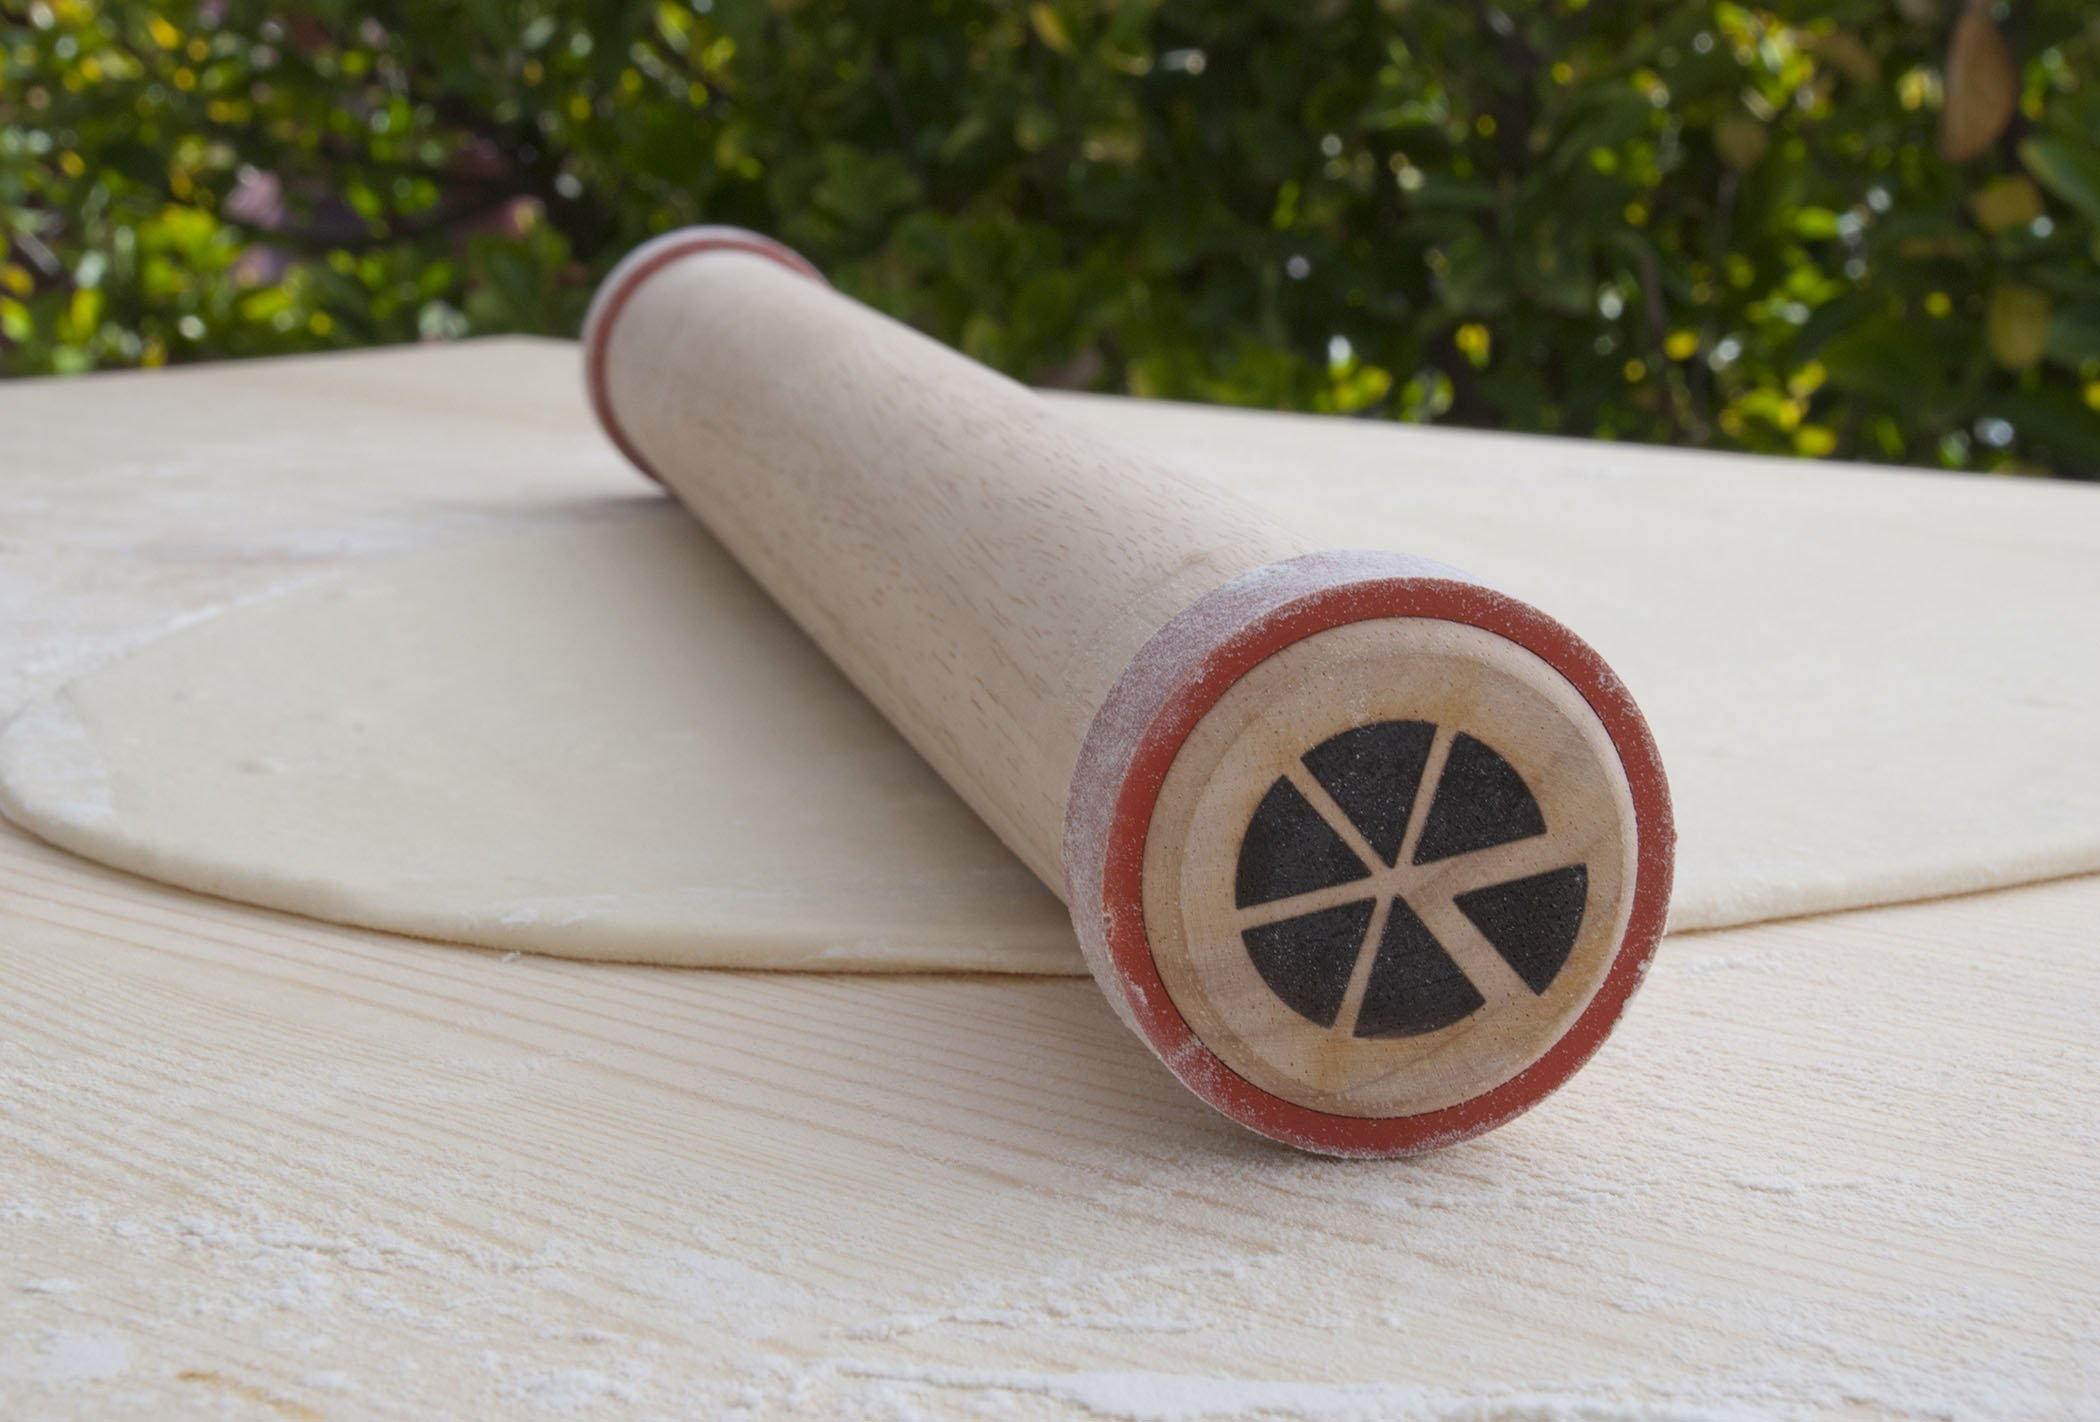 Pizzacraft PC0412 Wood Rolling Pin with Silicone Dough Rings by Pizzacraft (Image #3)